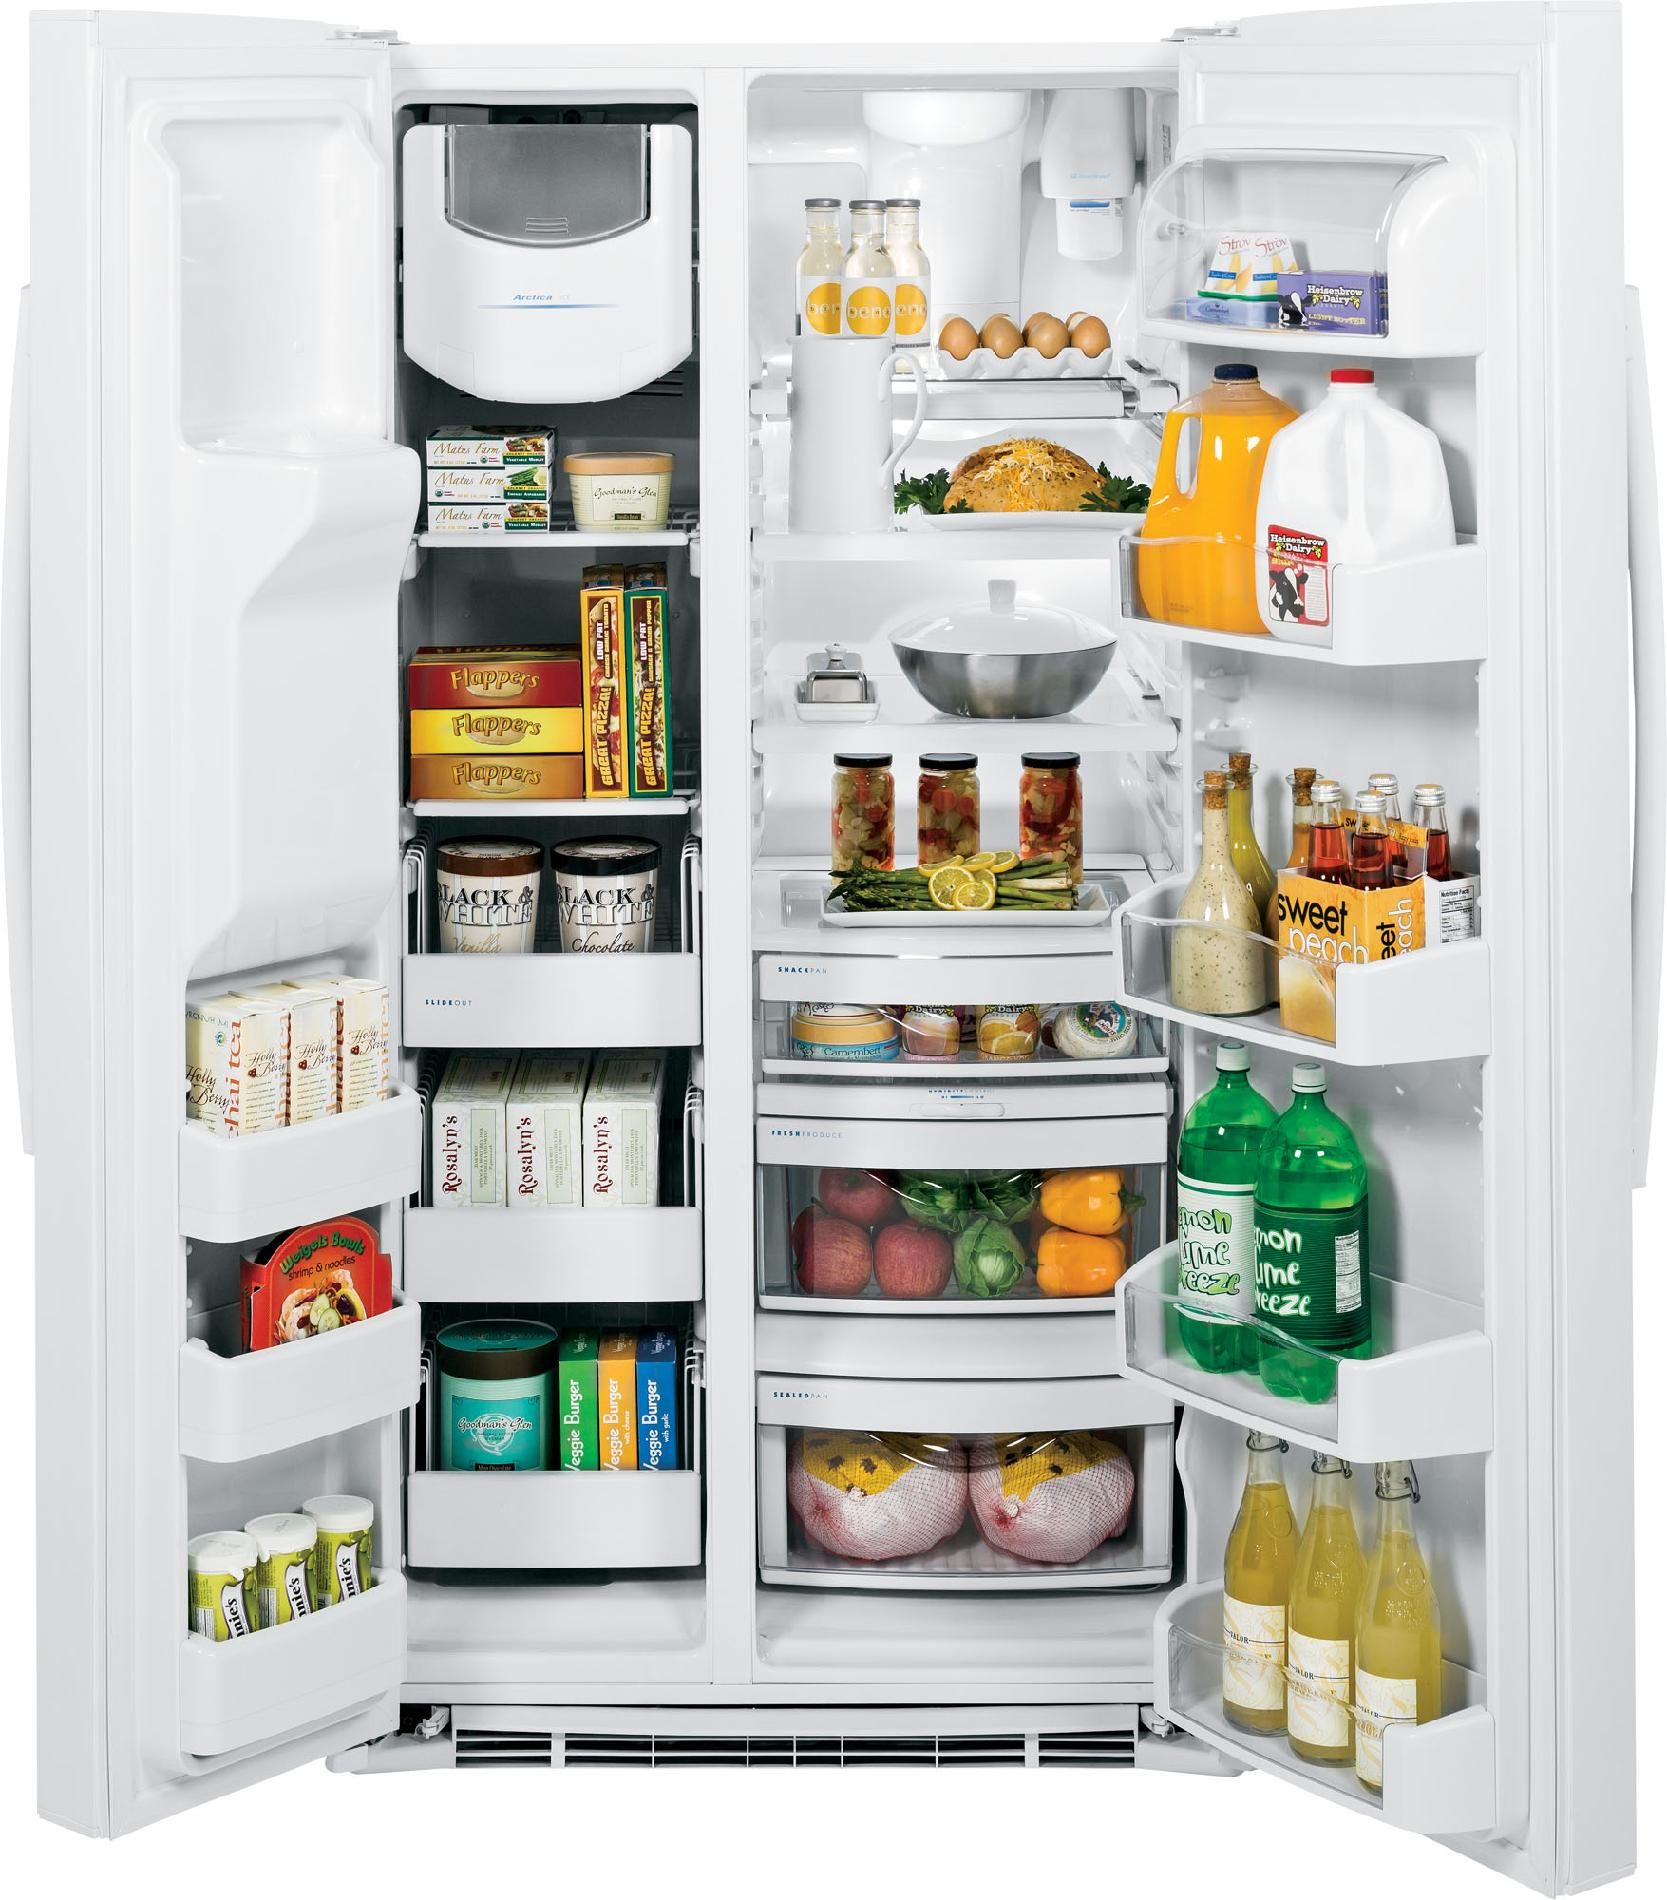 GE Profile 25.9 cu. ft. Side-by-Side Refrigerator w/ Turbo Cool - White